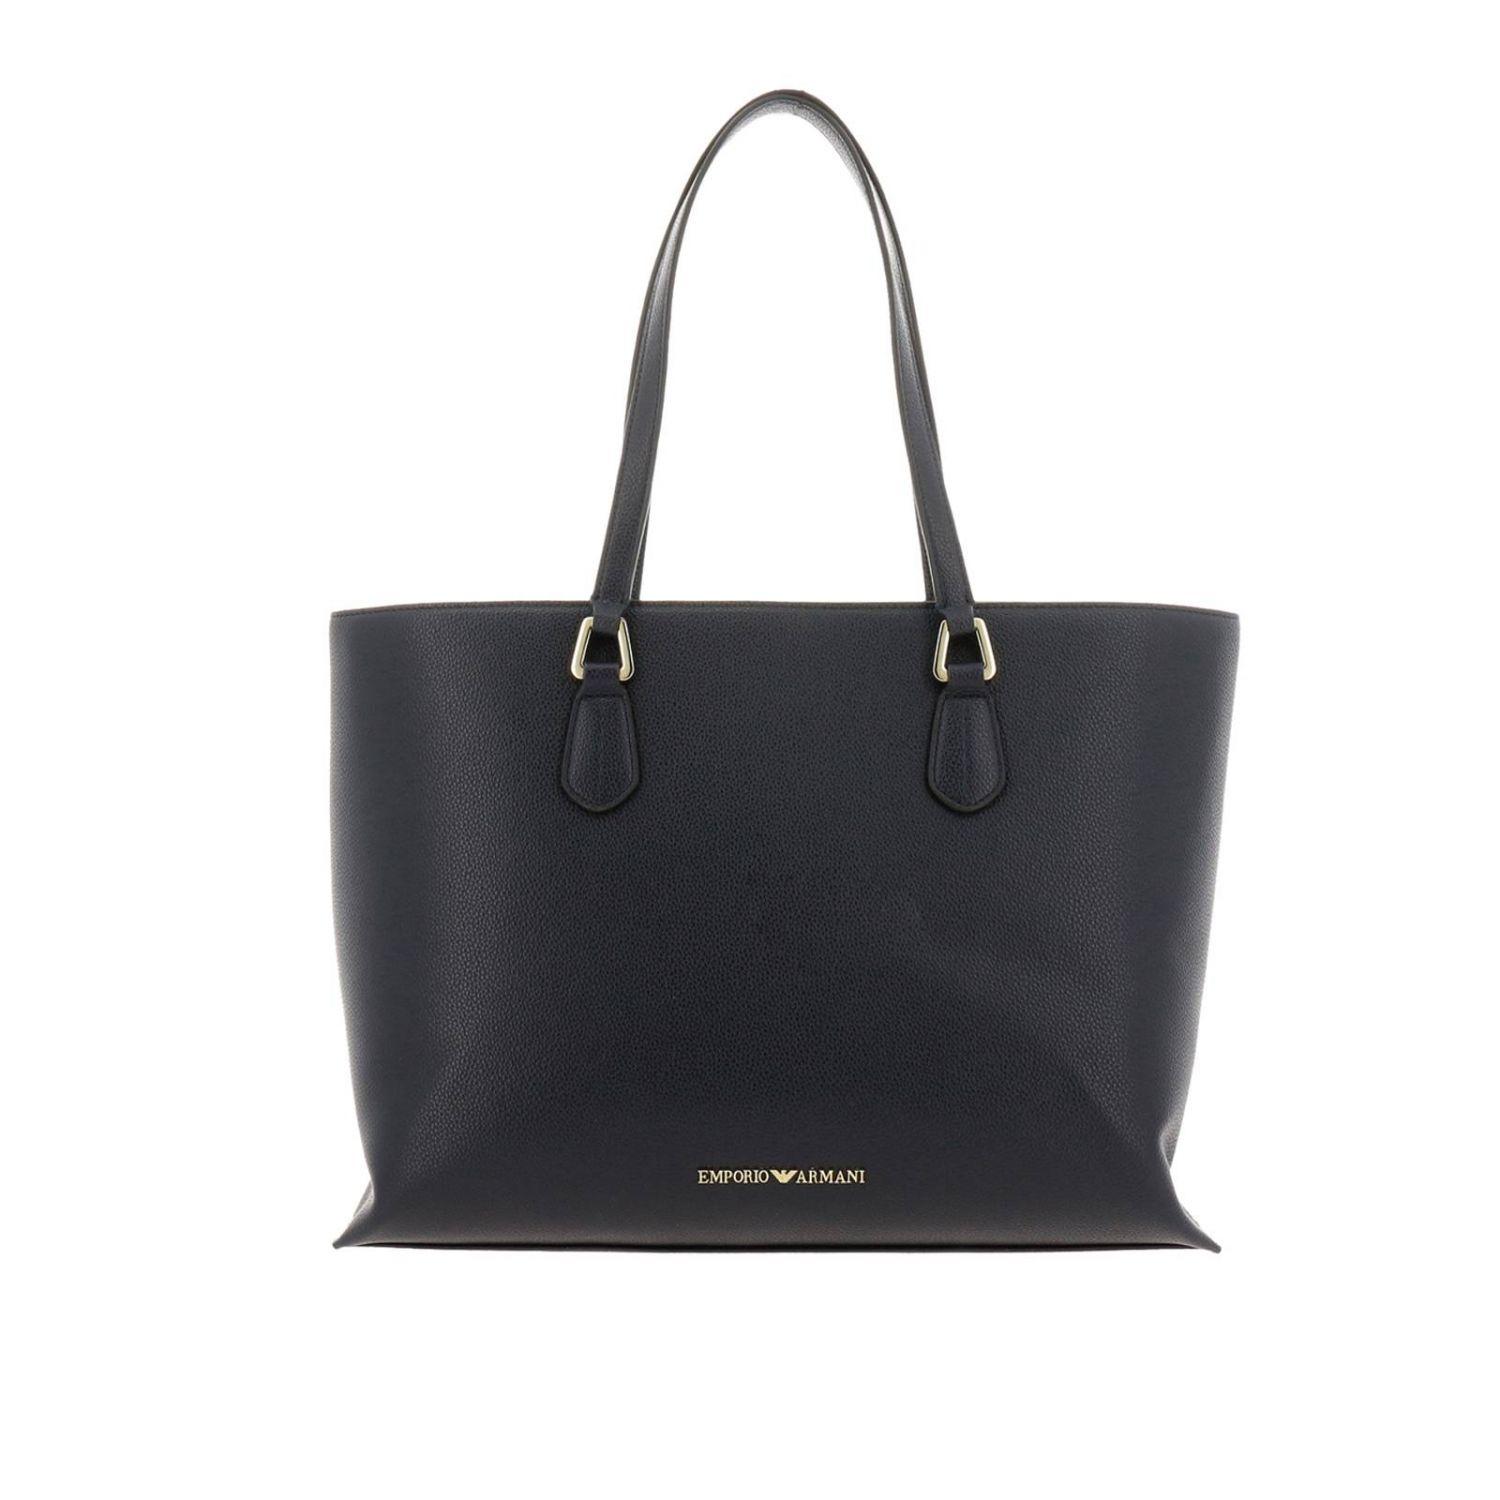 EMPORIO ARMANI | Shoulder Bag Shoulder Bag Women Emporio Armani | Goxip